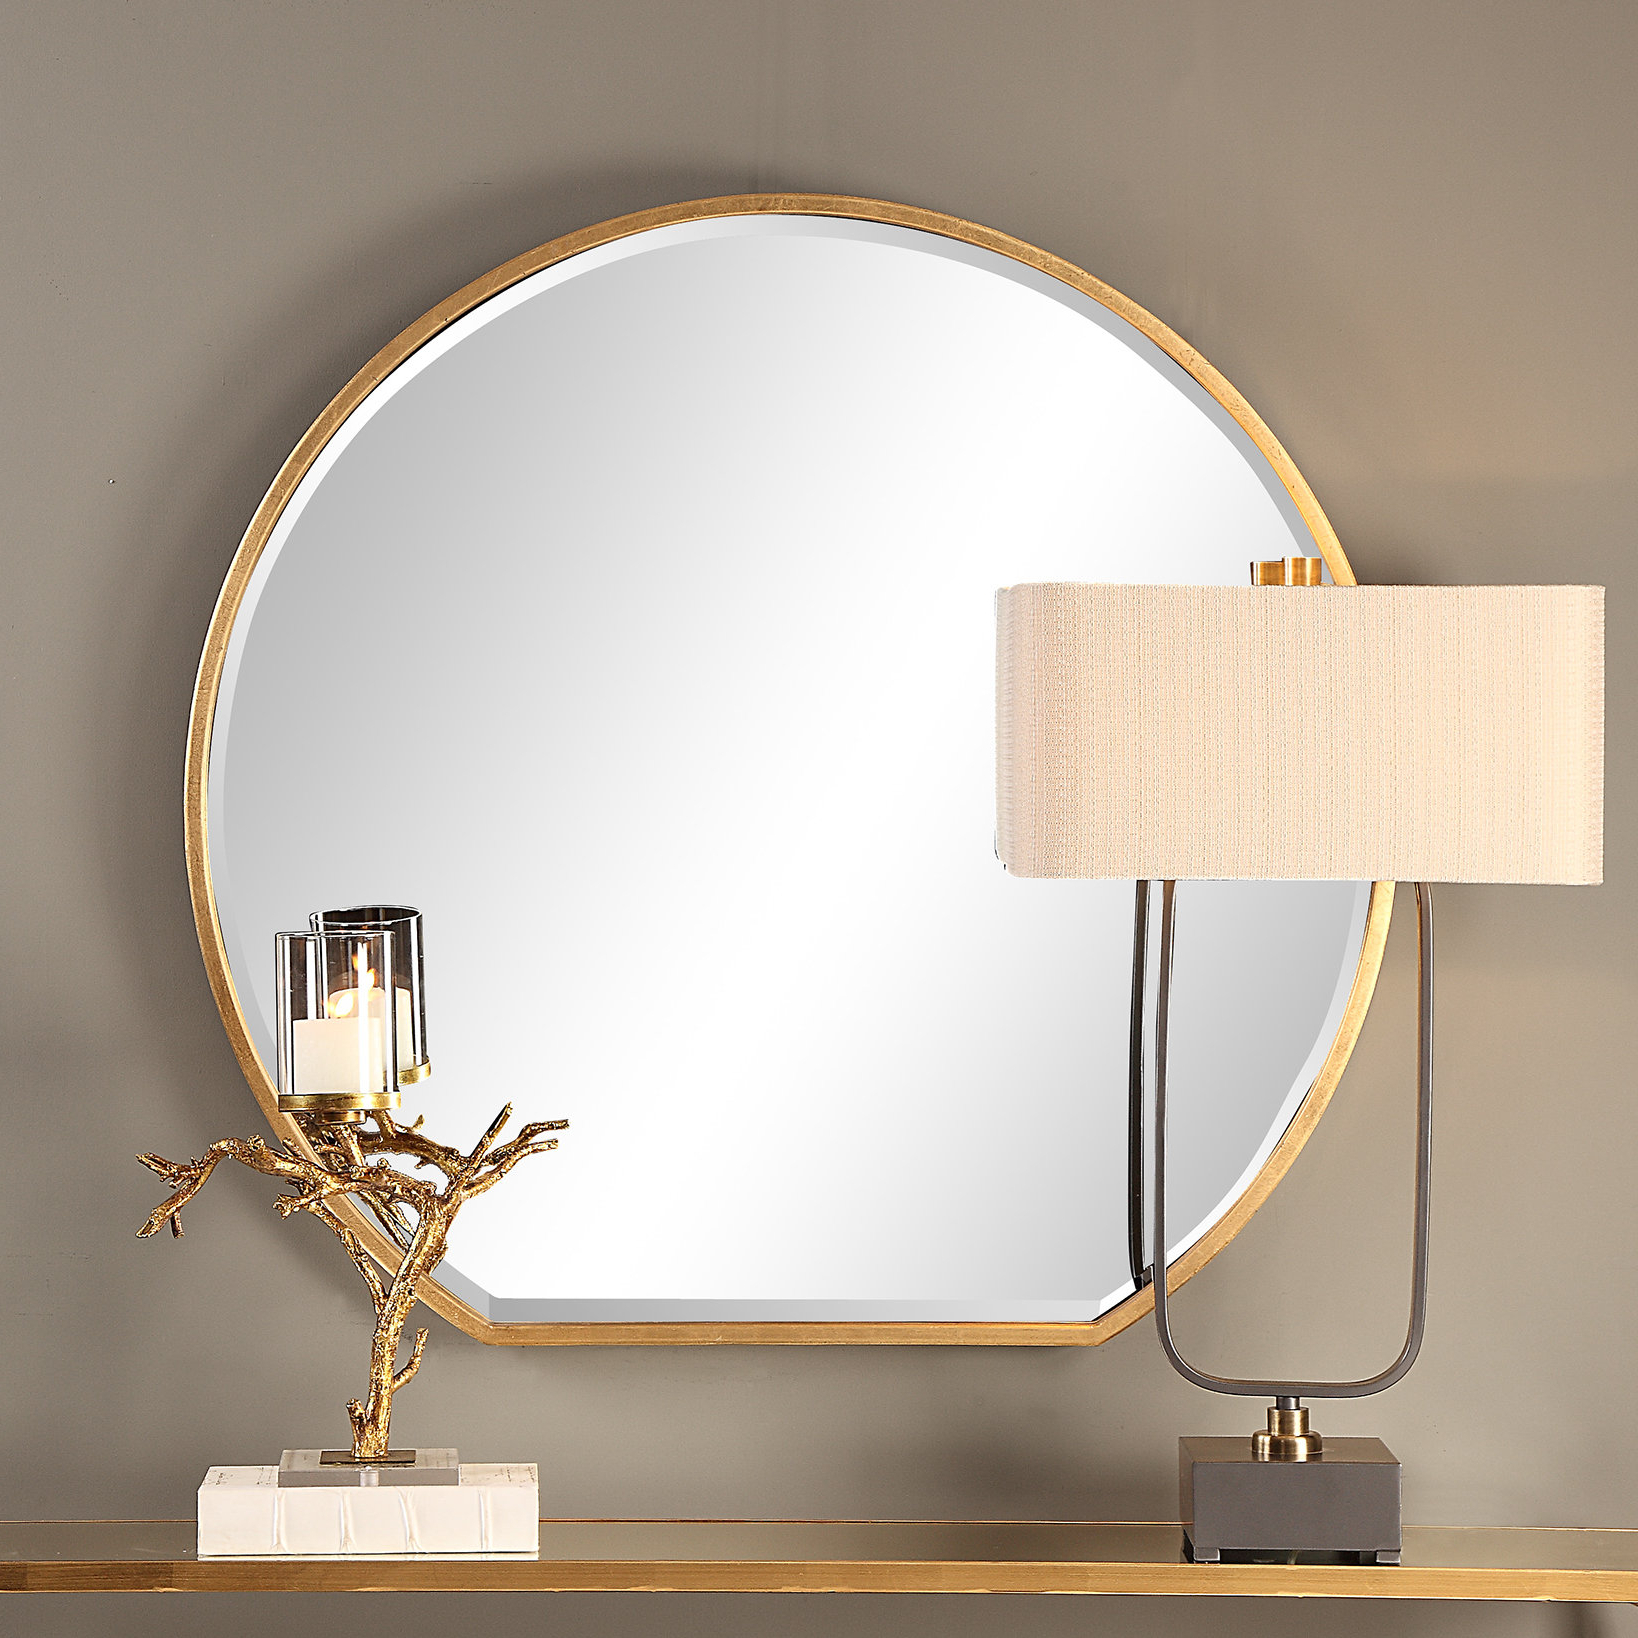 Popular Kelvin Accent Mirror Intended For Lugo Rectangle Accent Mirrors (View 20 of 20)